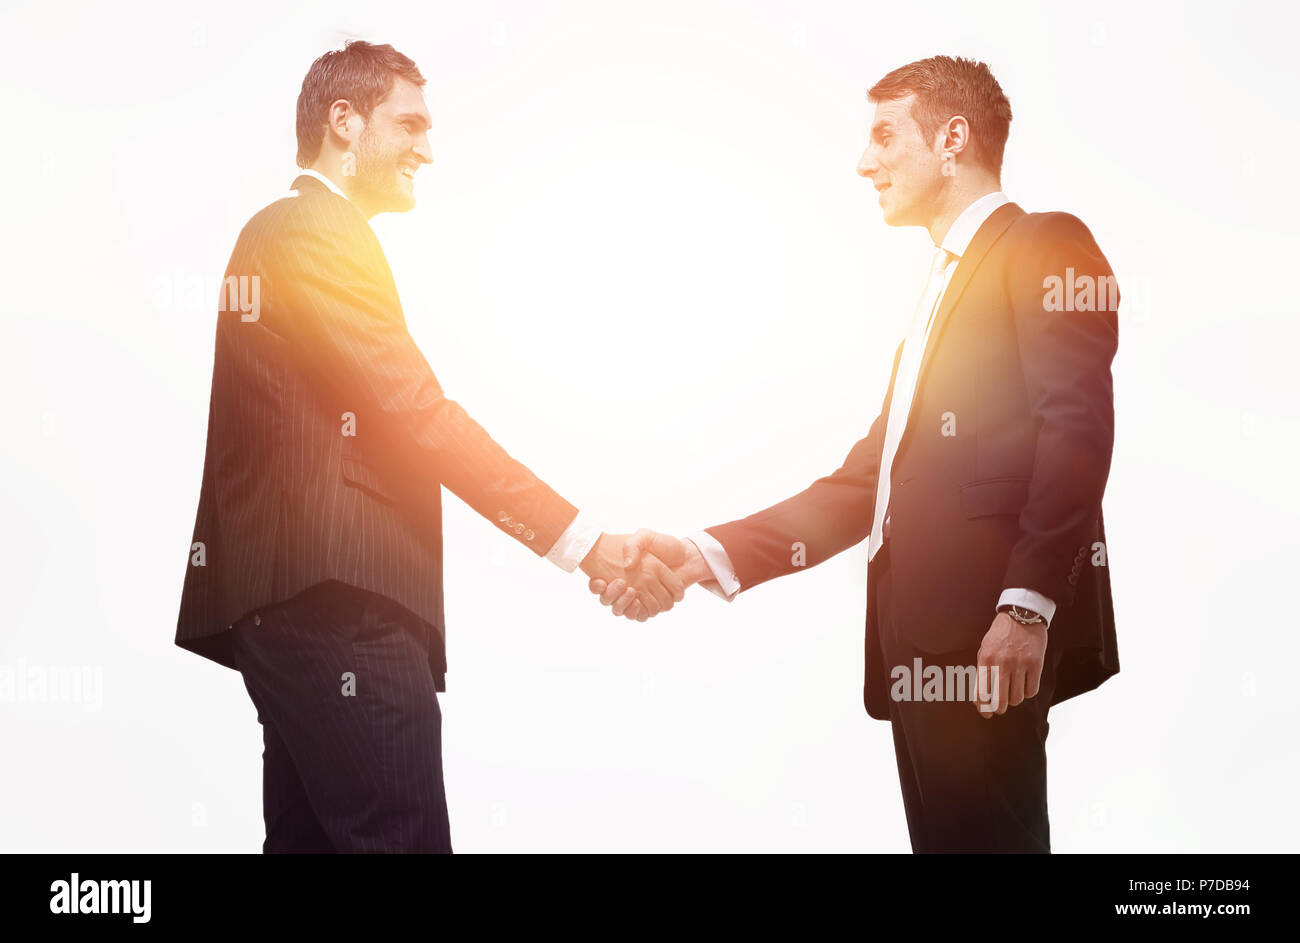 handshake business partners.isolated on a white background. - Stock Image